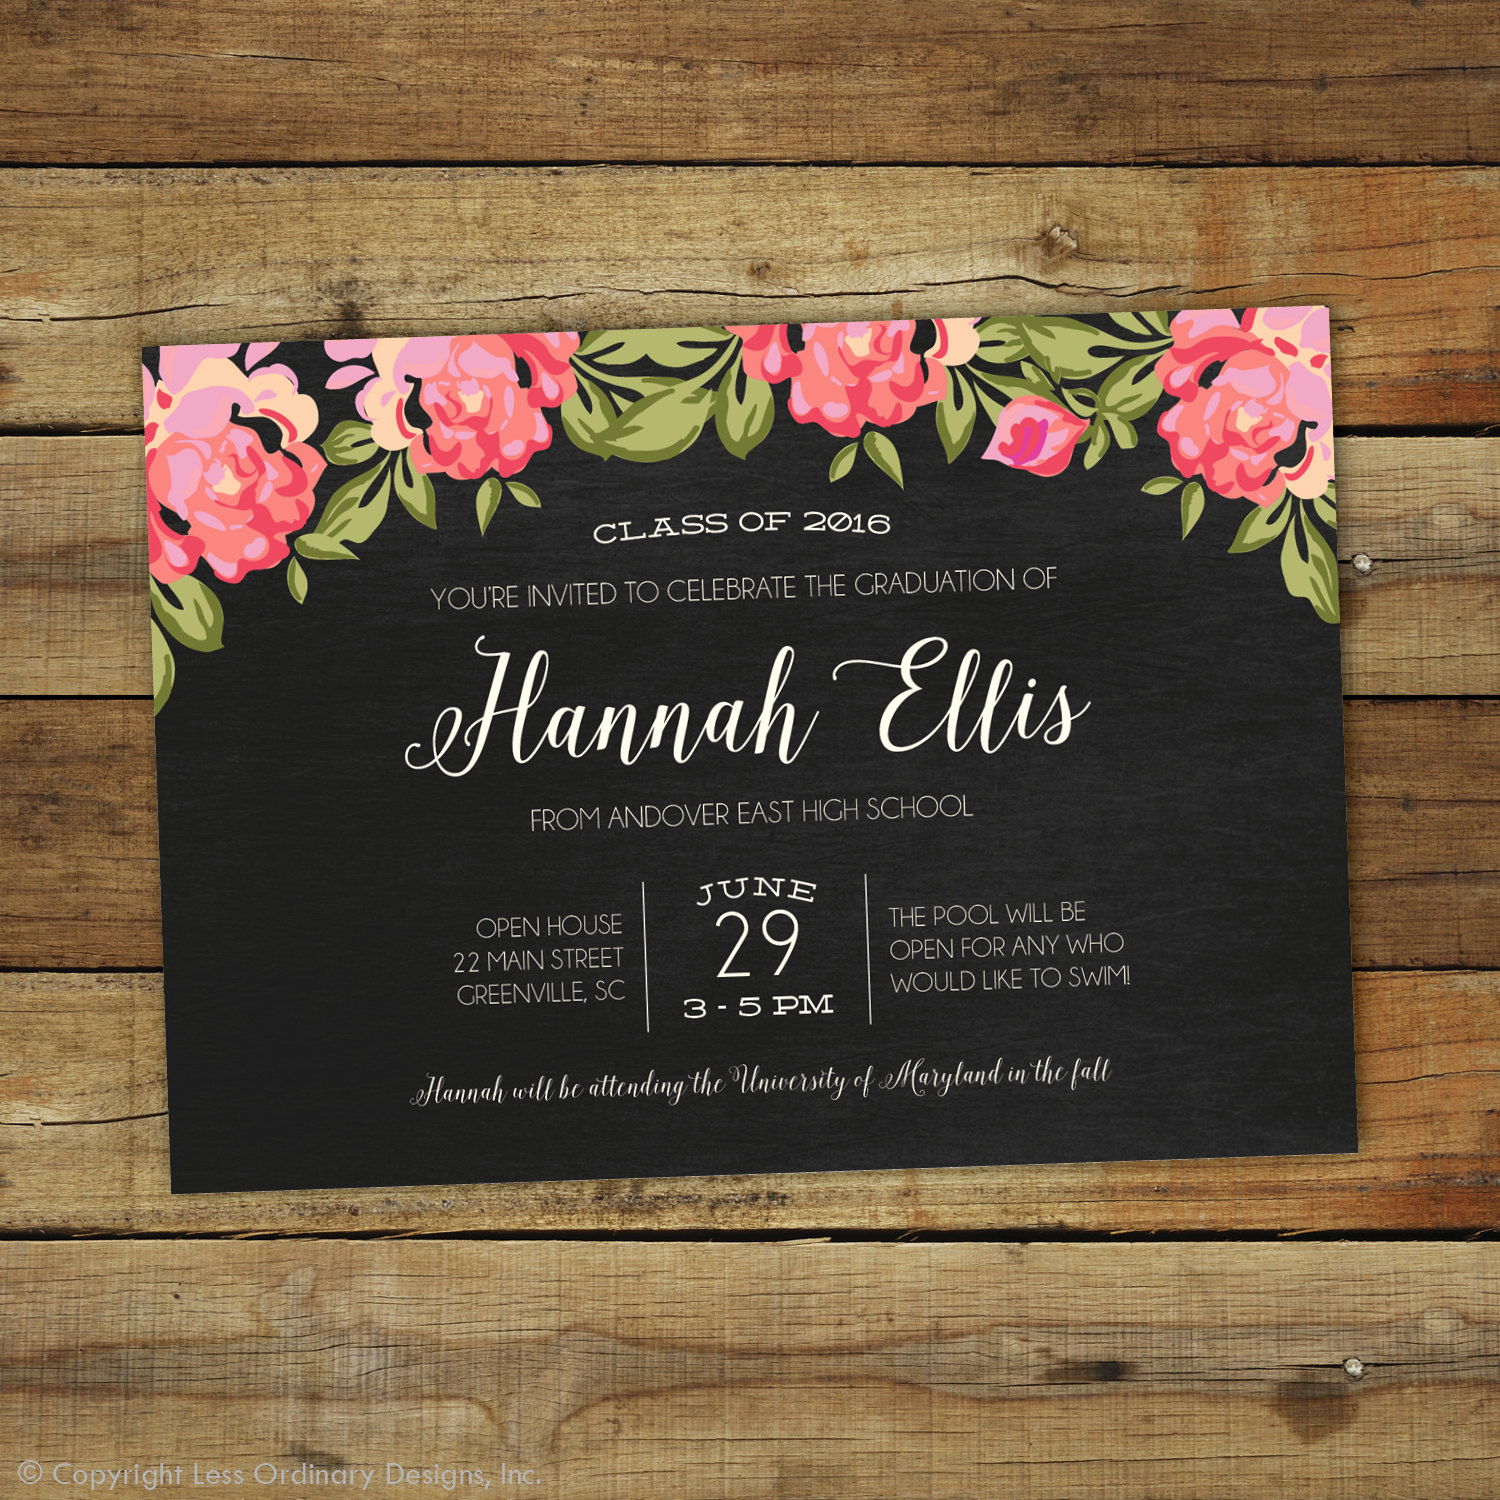 Graduation Party Invitation Cards Lovely 2017 Graduation Party Invitation Floral Graduation Open House